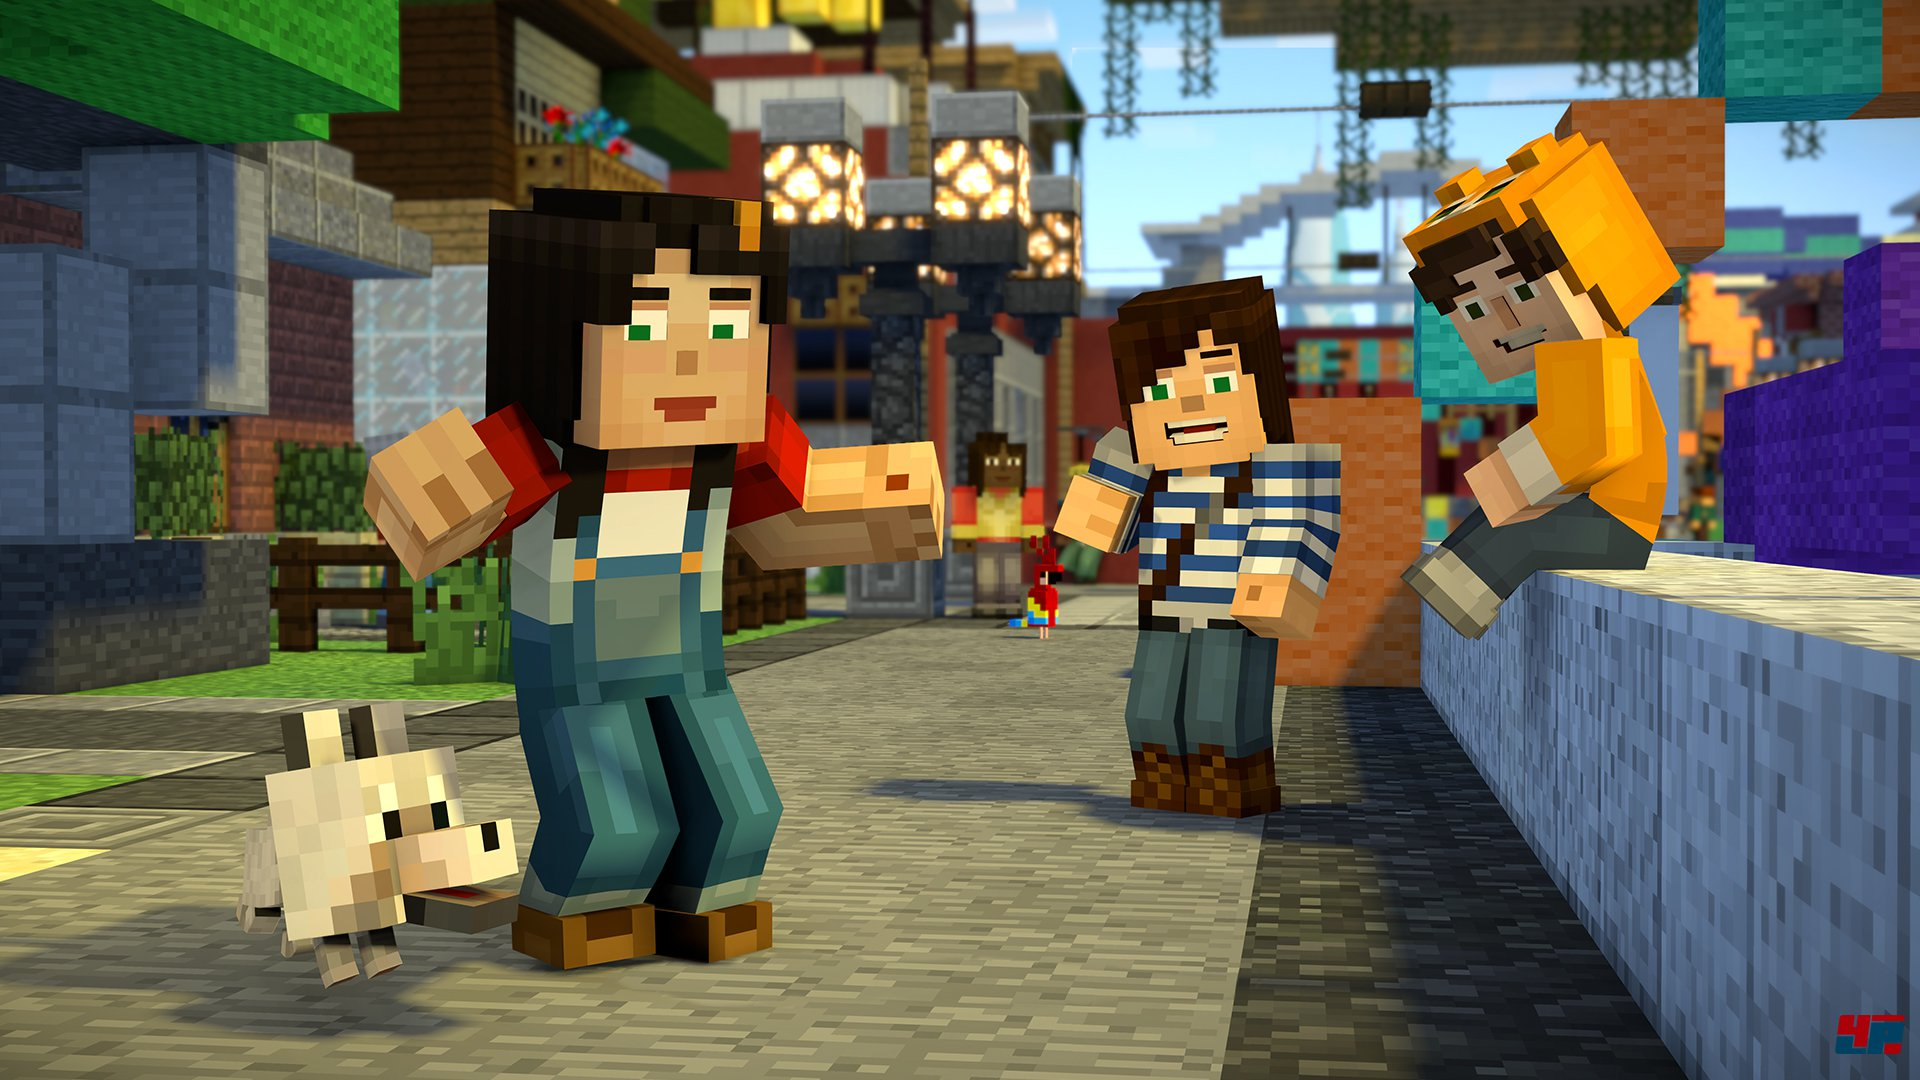 Minecraft: Story Mode - Season 2 beginnt am 11. Juli